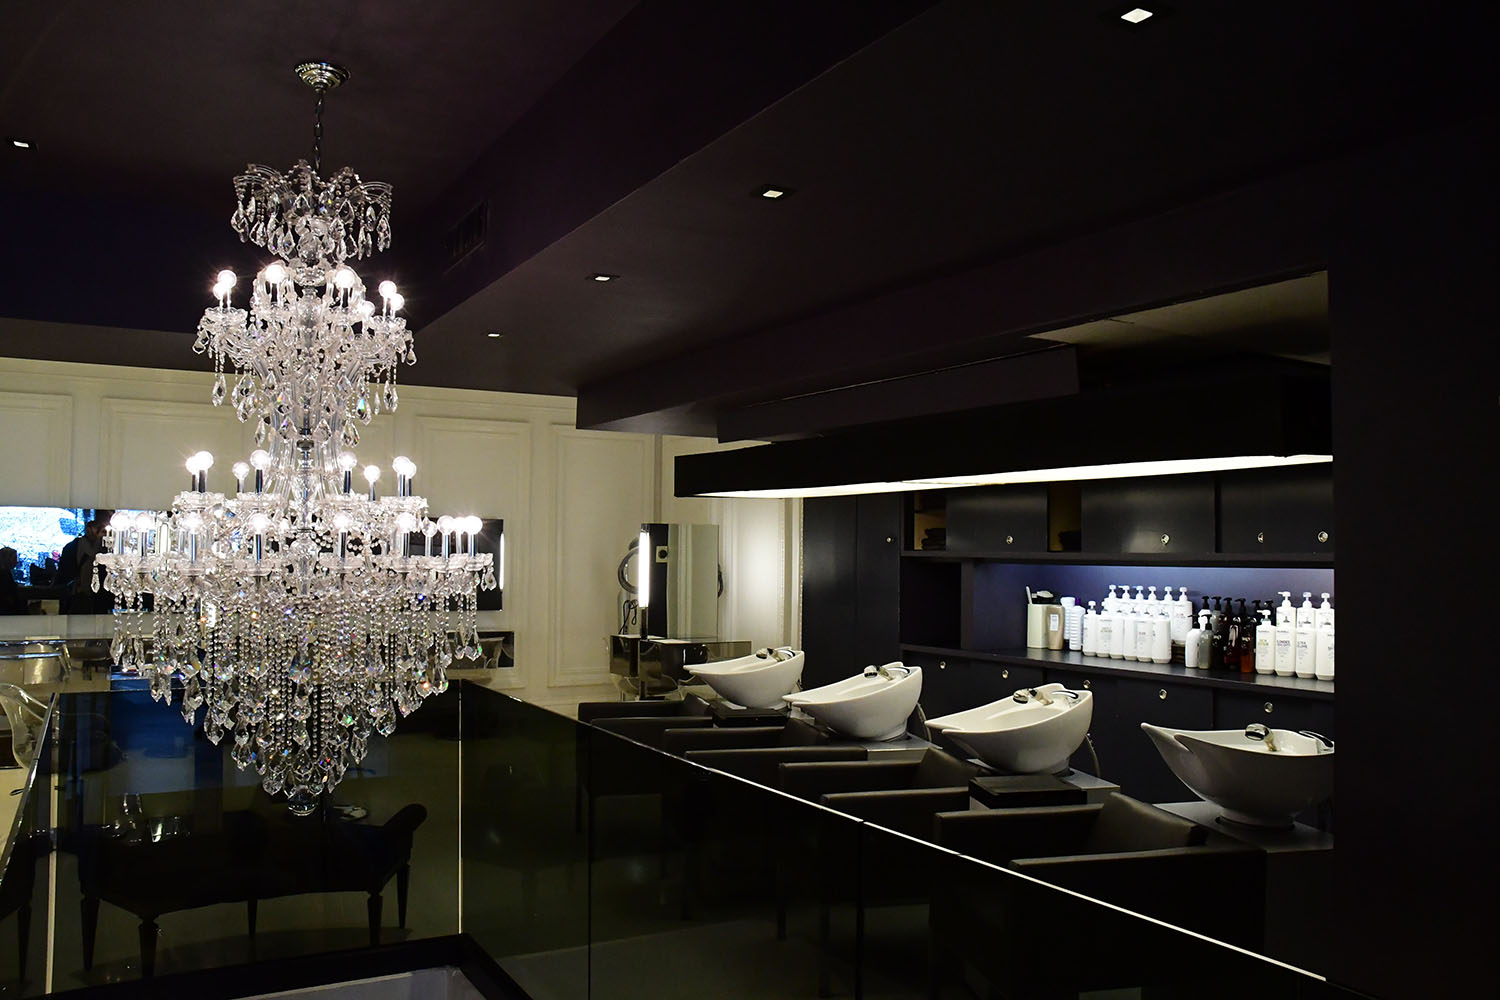 Dimly lit salon with chandelier and sinks